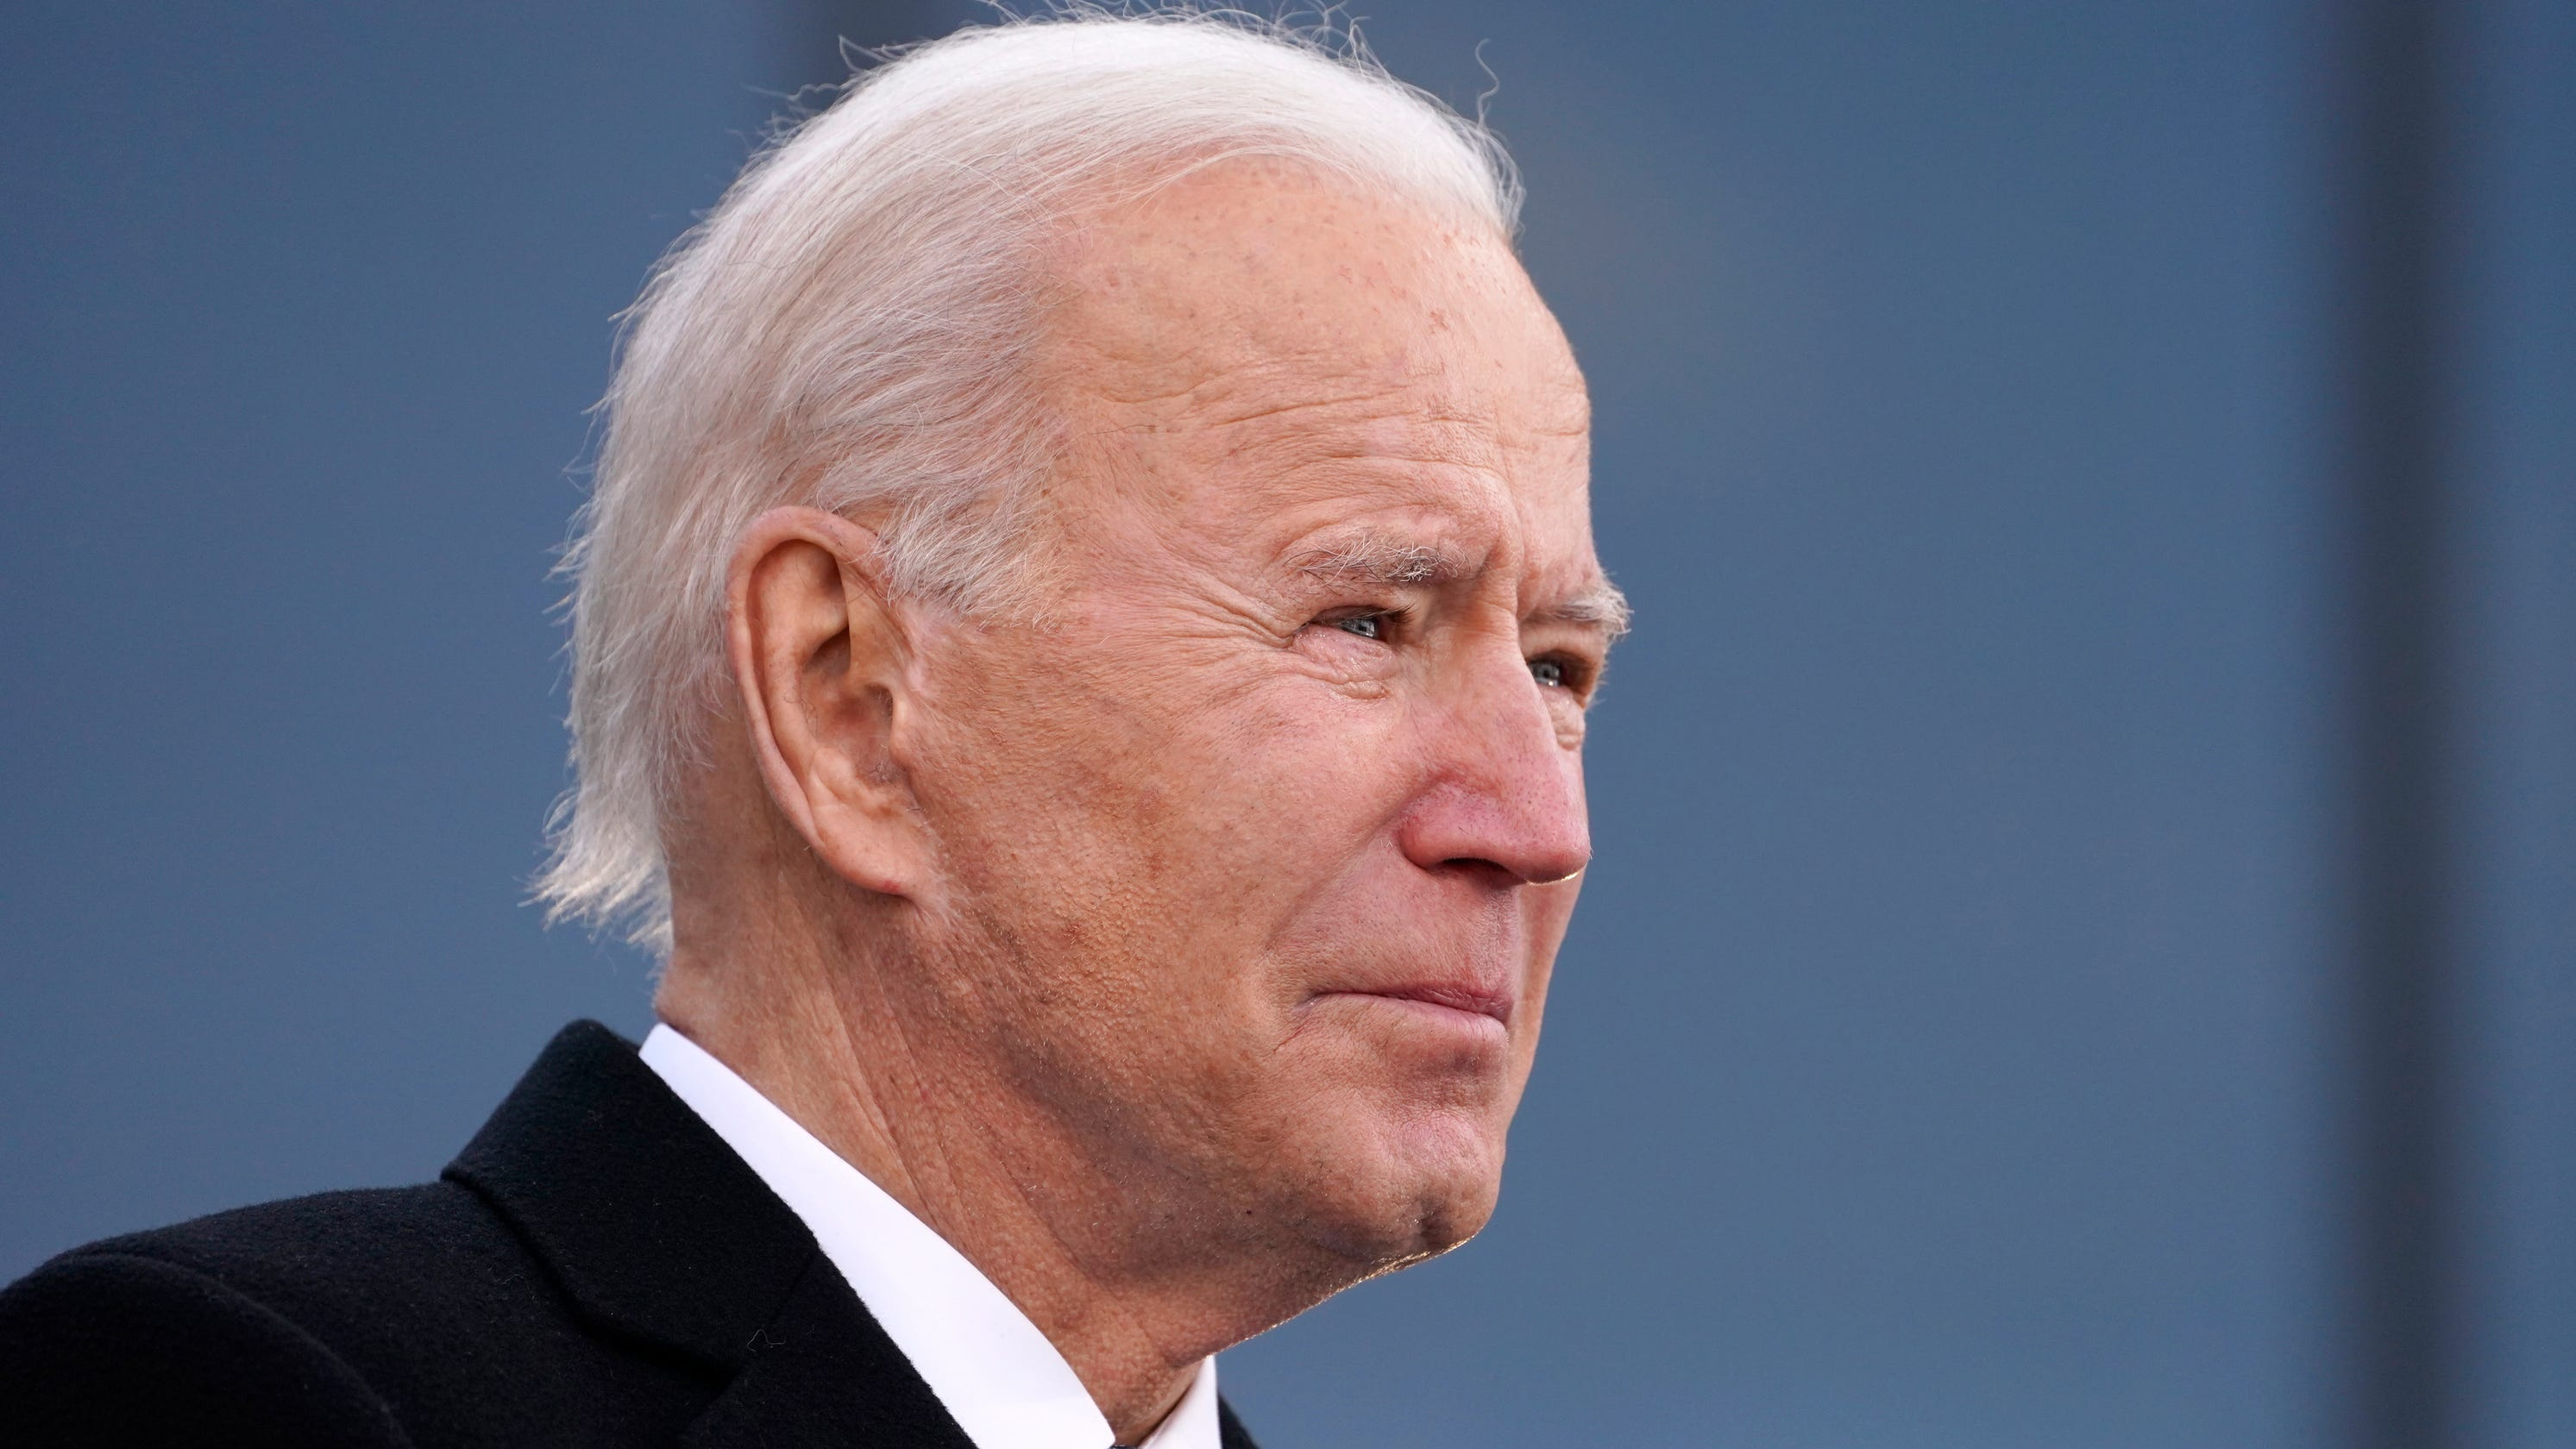 Day 1 agenda: Joe Biden plans to swiftly reverse Trump's 'most egregious moves' on first day in White House